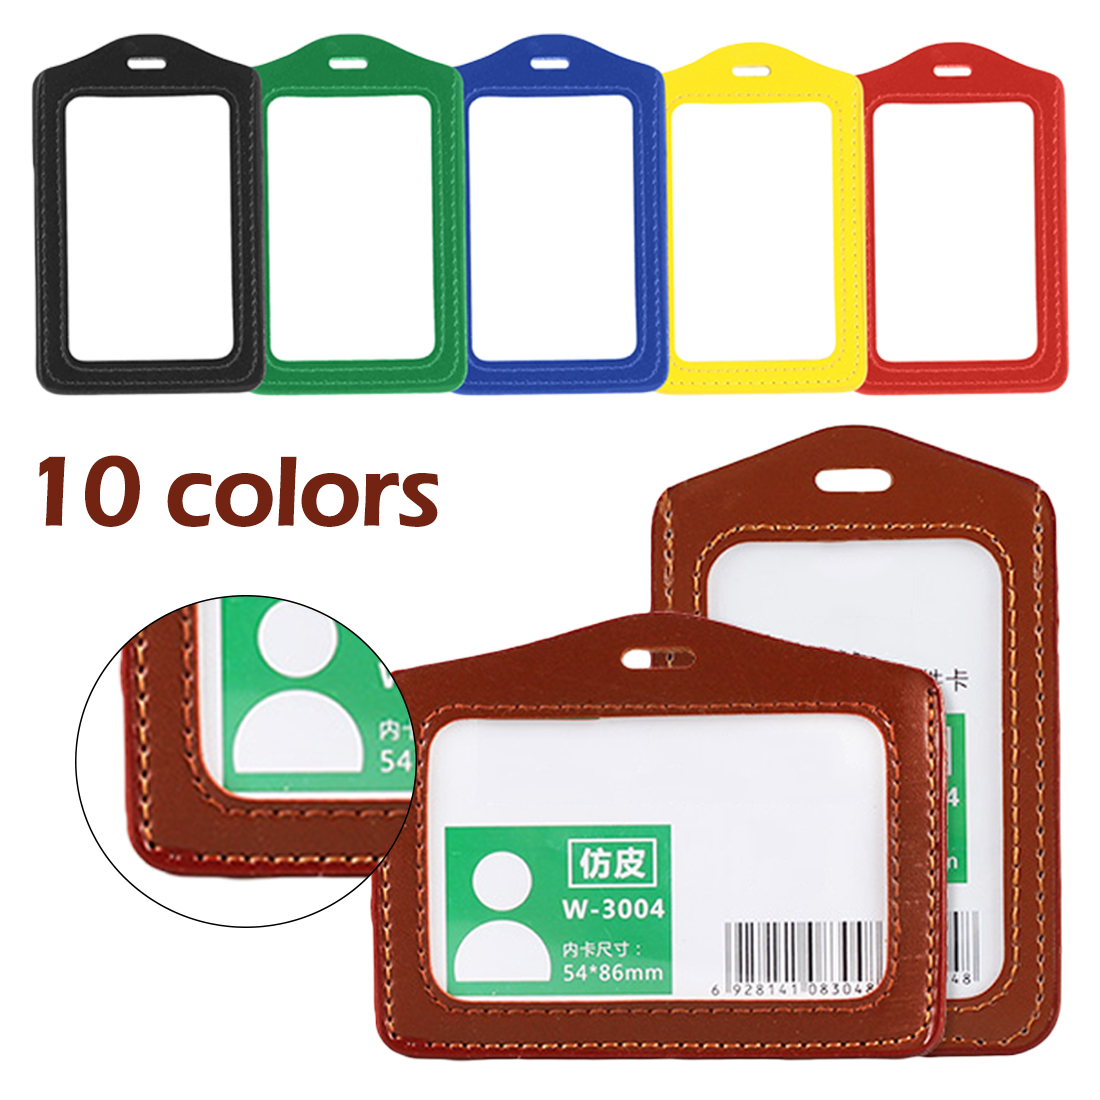 Transparent PU Leather ID Badge Case Clear And Color Border Lanyard Holes Bank Credit Card Holders ID Badge Holders Accessories